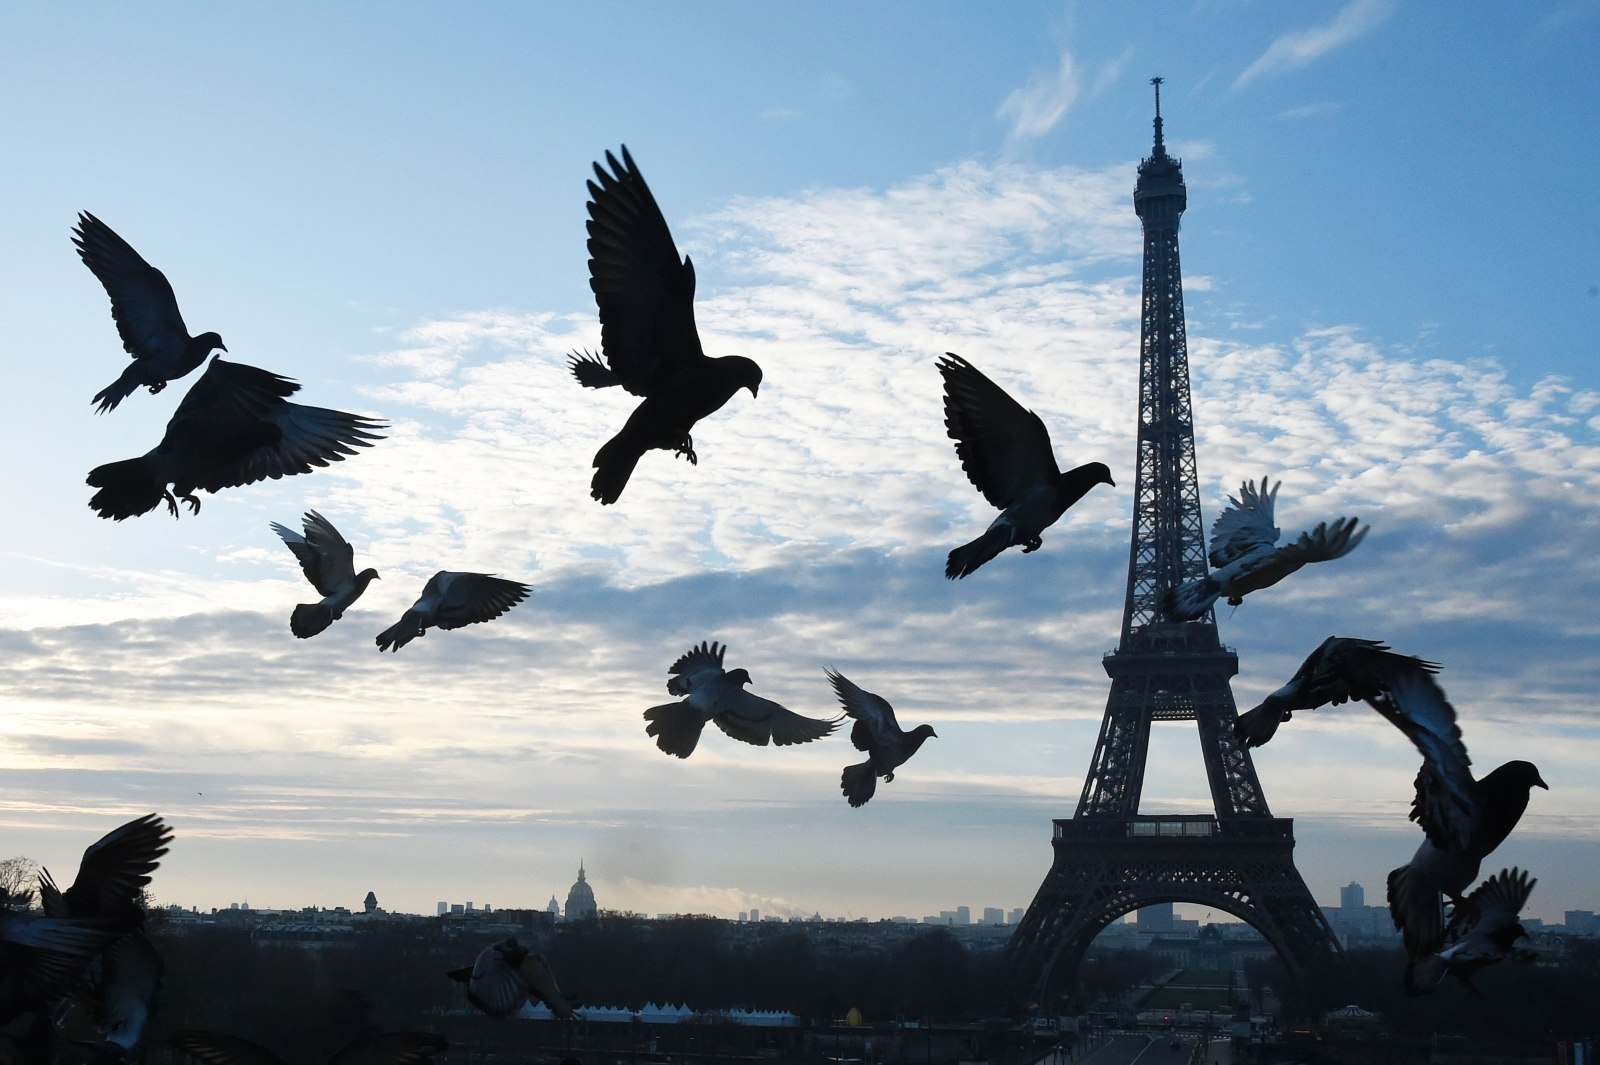 Pigeons fly in front of Eiffel Tower